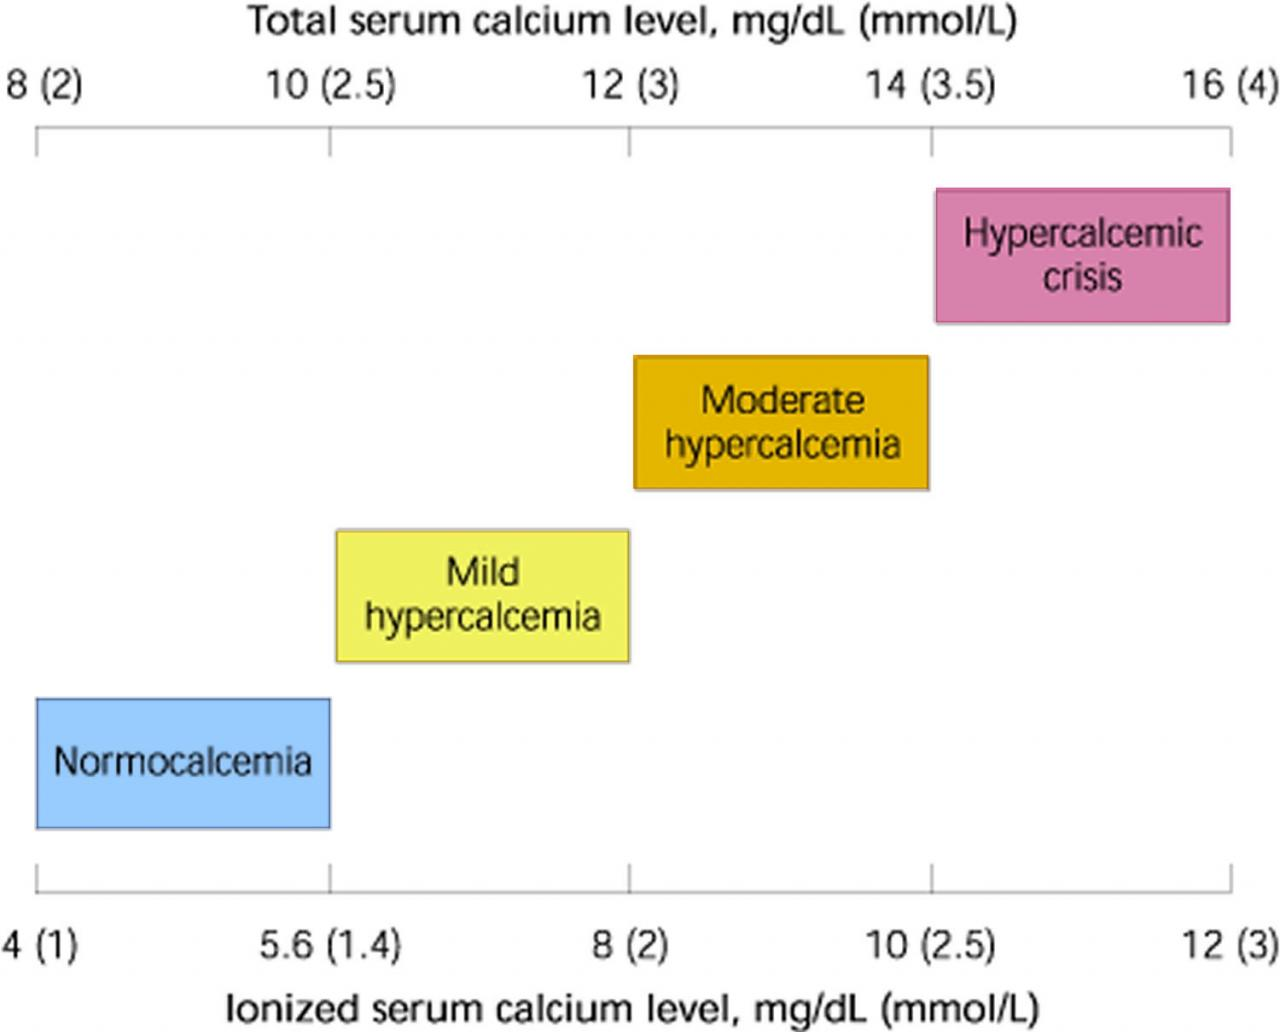 Hypercalcemia - Causes, Signs, Symptoms, Workup, Treatment